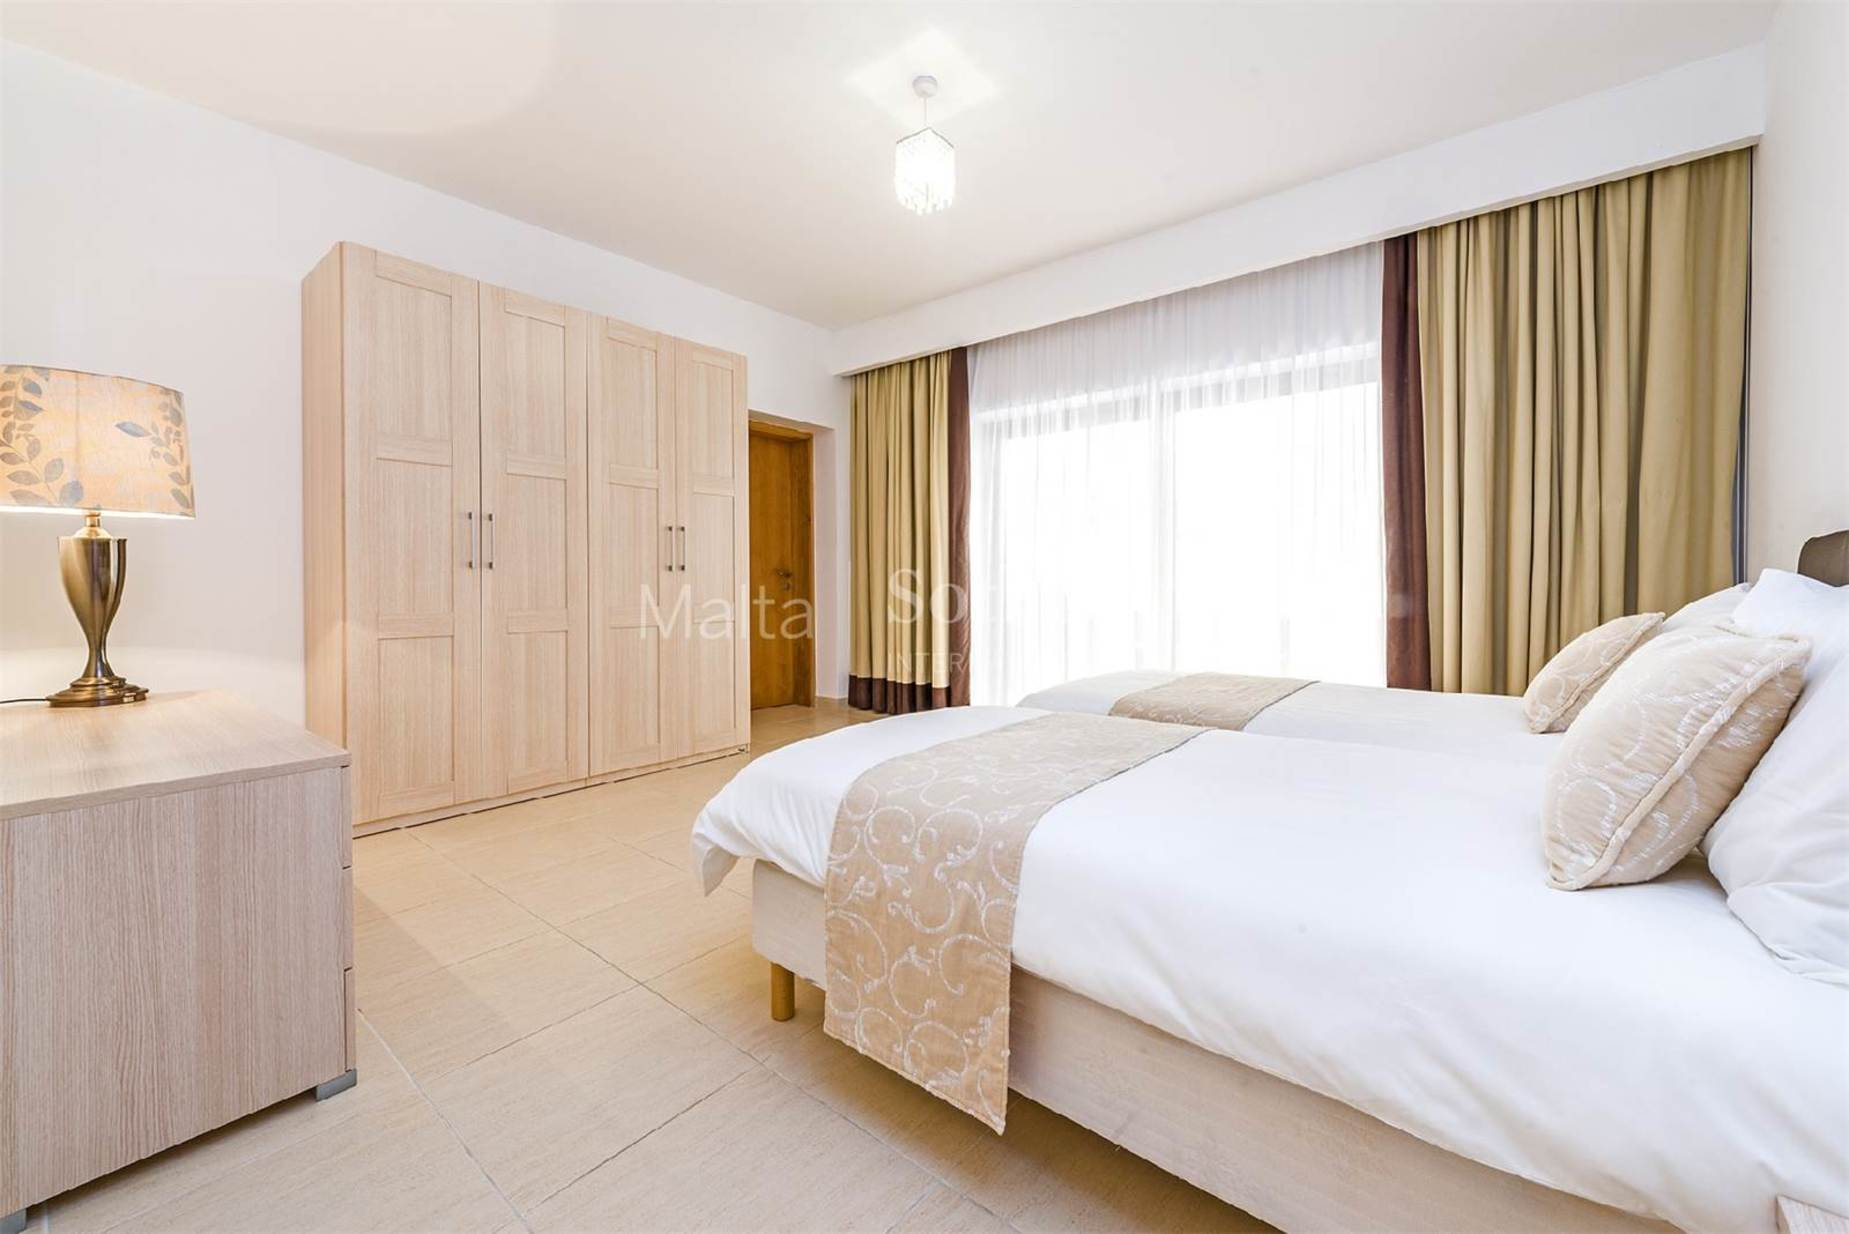 3 bed Apartment For Rent in Mellieha, Mellieha - thumb 17